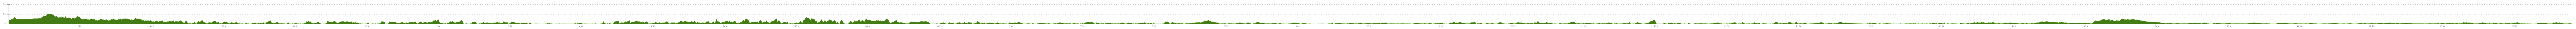 Elevation profile EuroVelo: Baltic Sea Cycle Route Finish leg